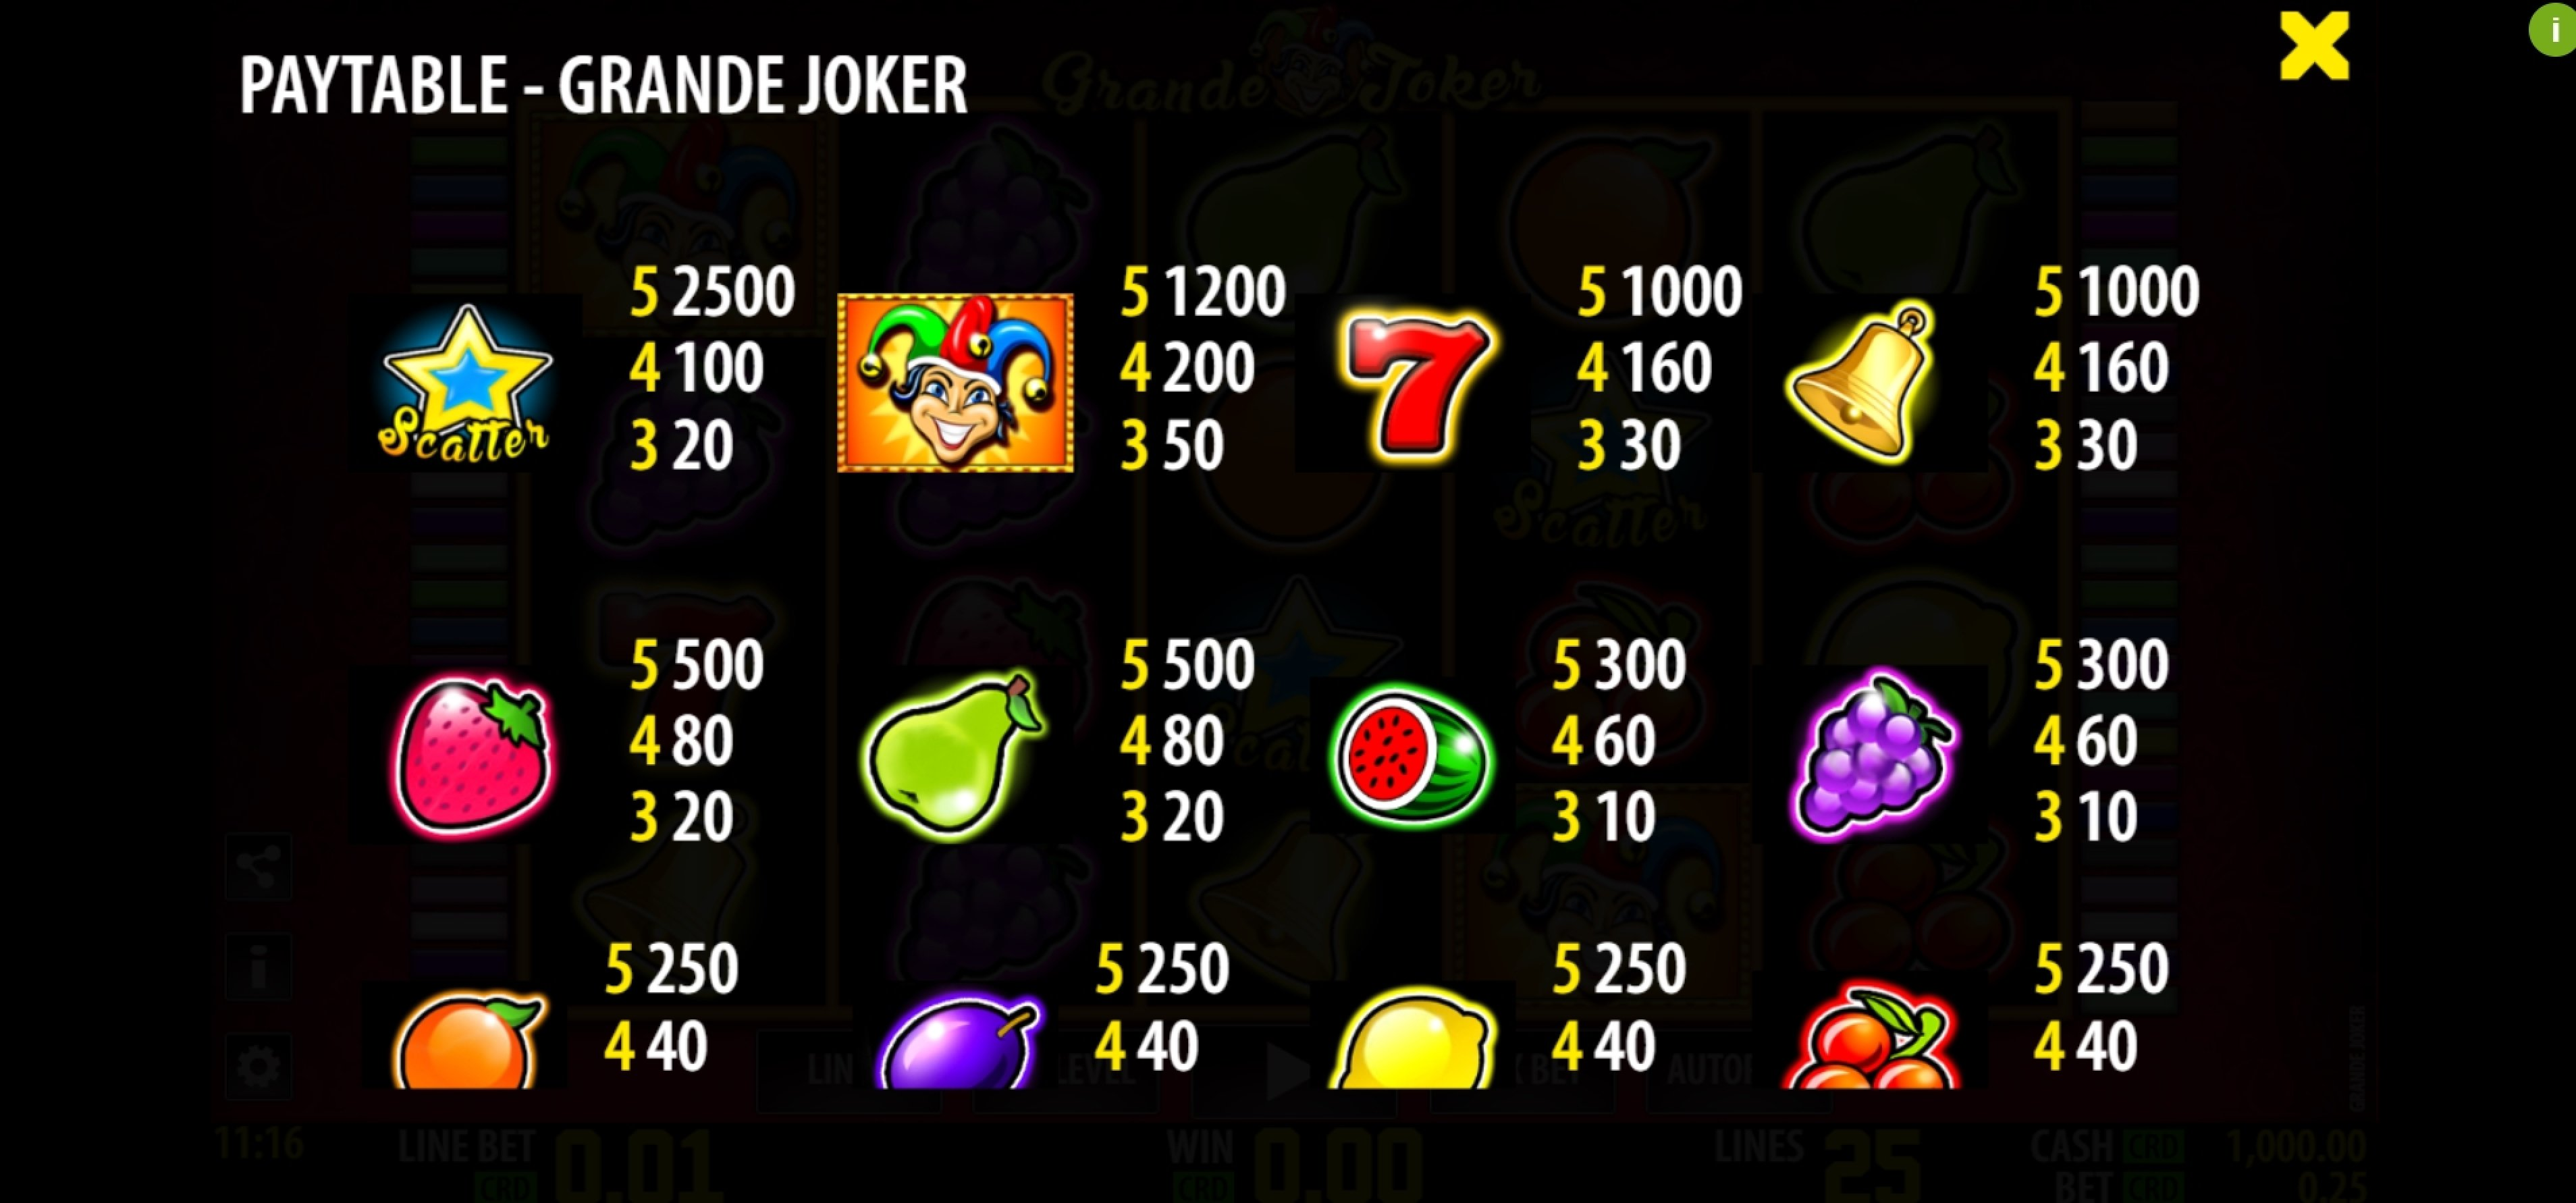 Info of Grande Joker Slot Game by Nazionale Elettronica